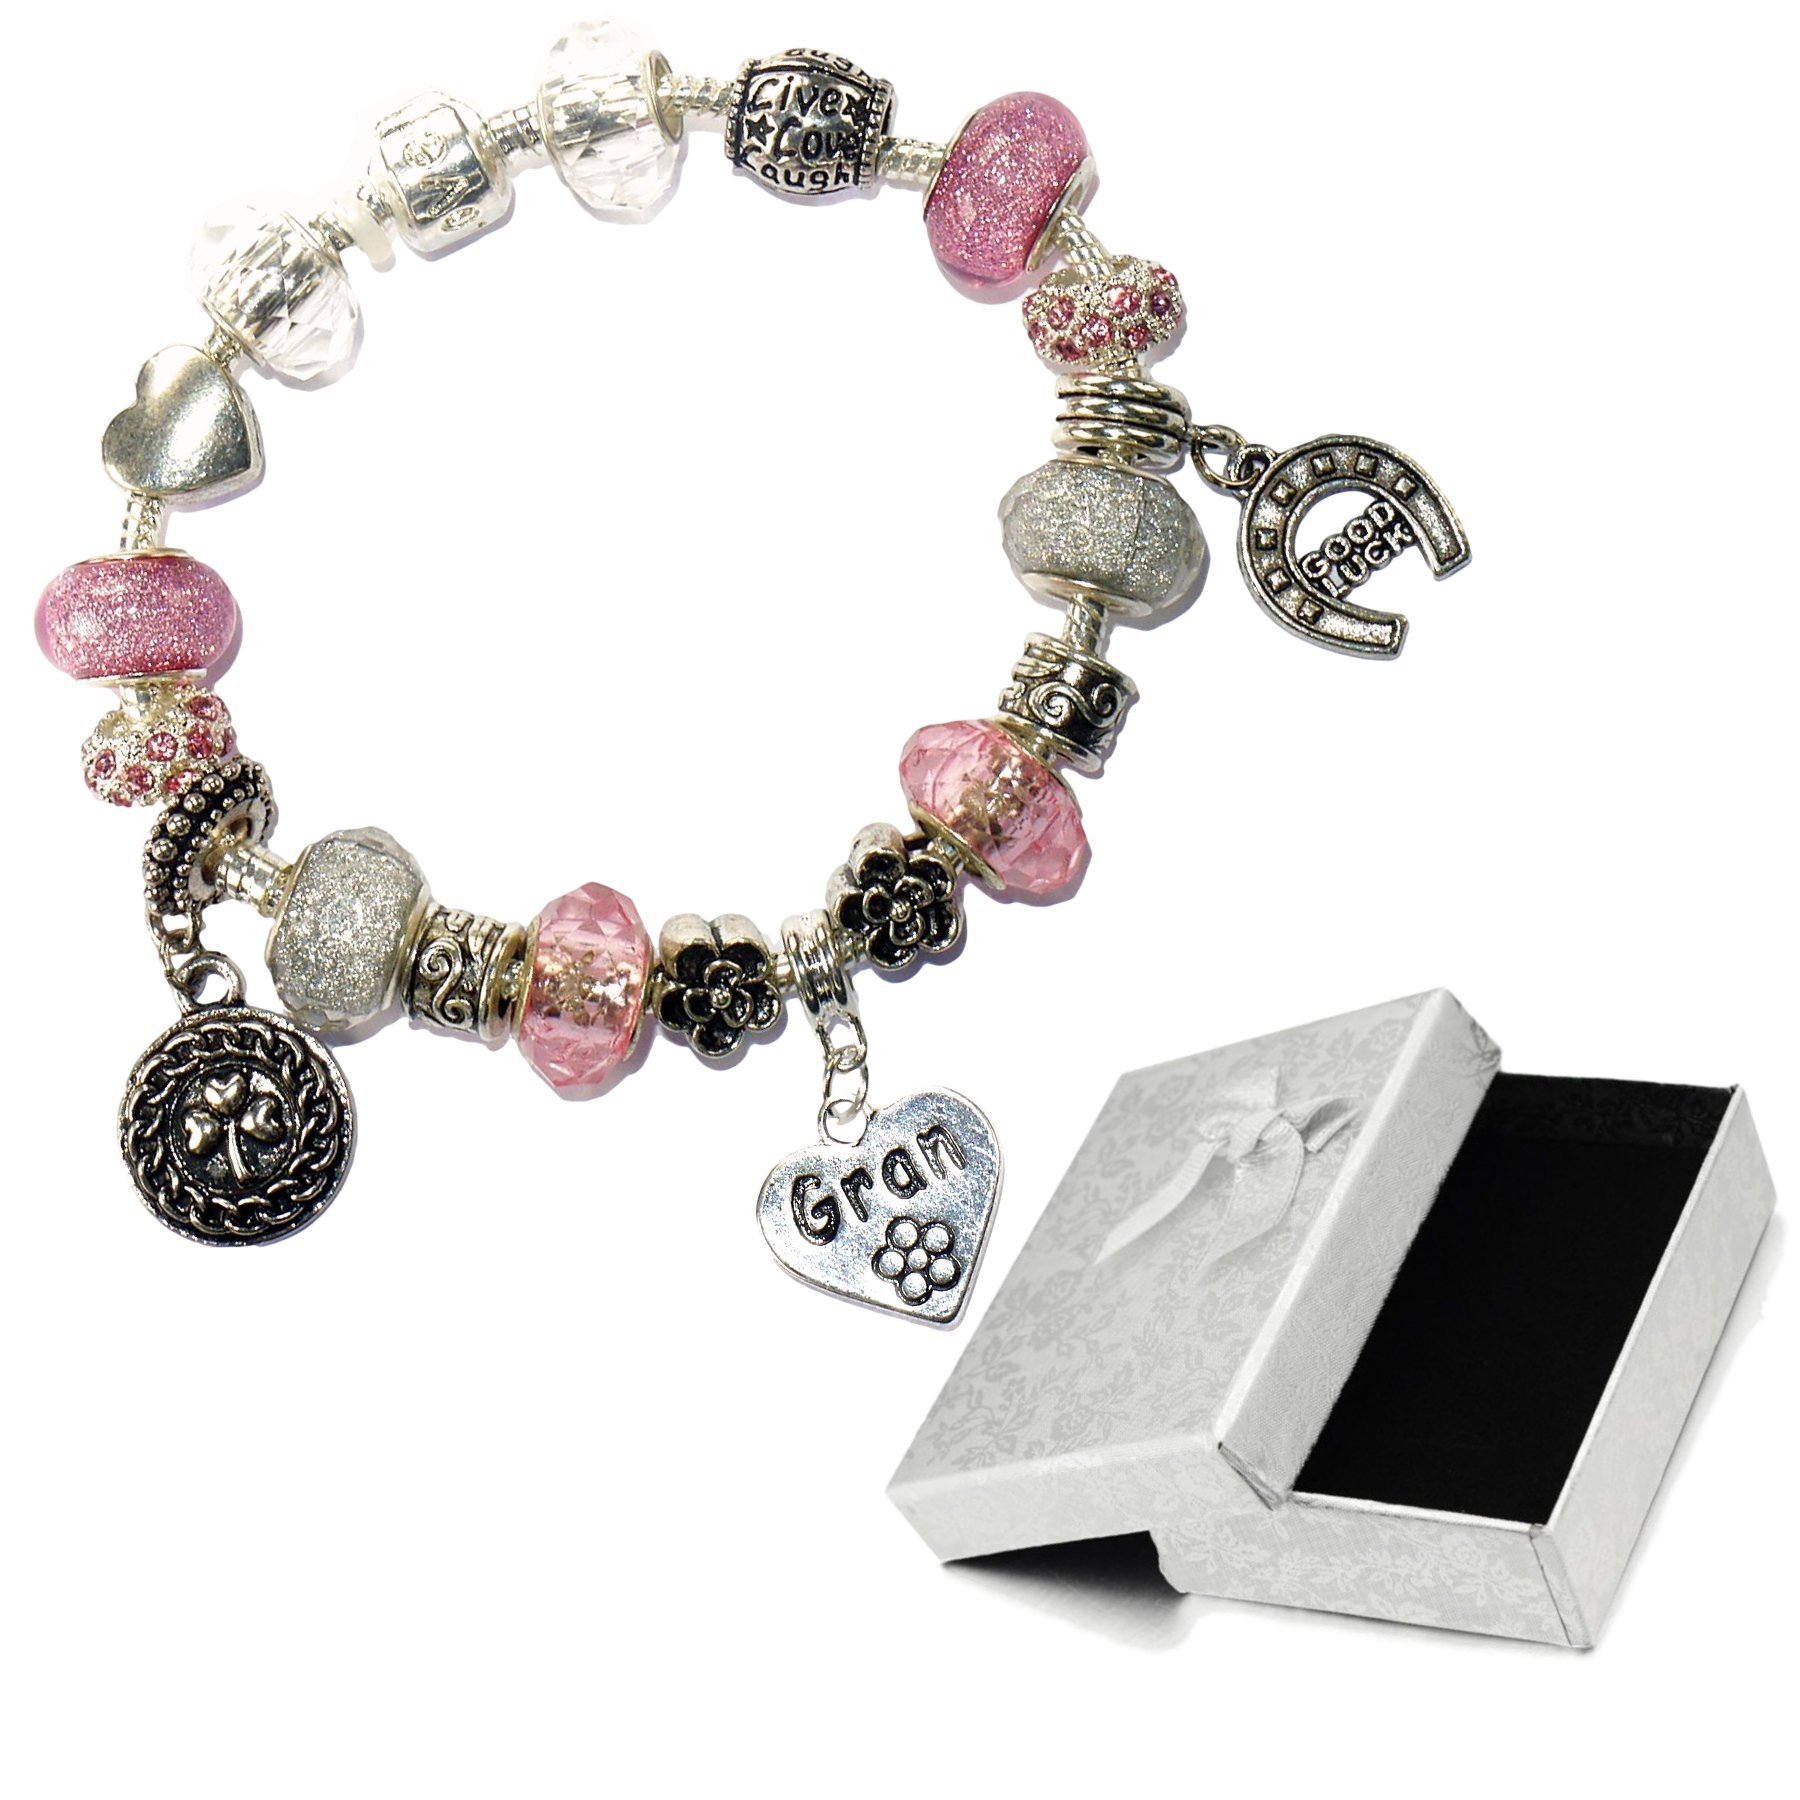 Charm Buddy Gran Pink Silver Crystal Good Luck Pandora Style Bracelet With Charms Gift Box